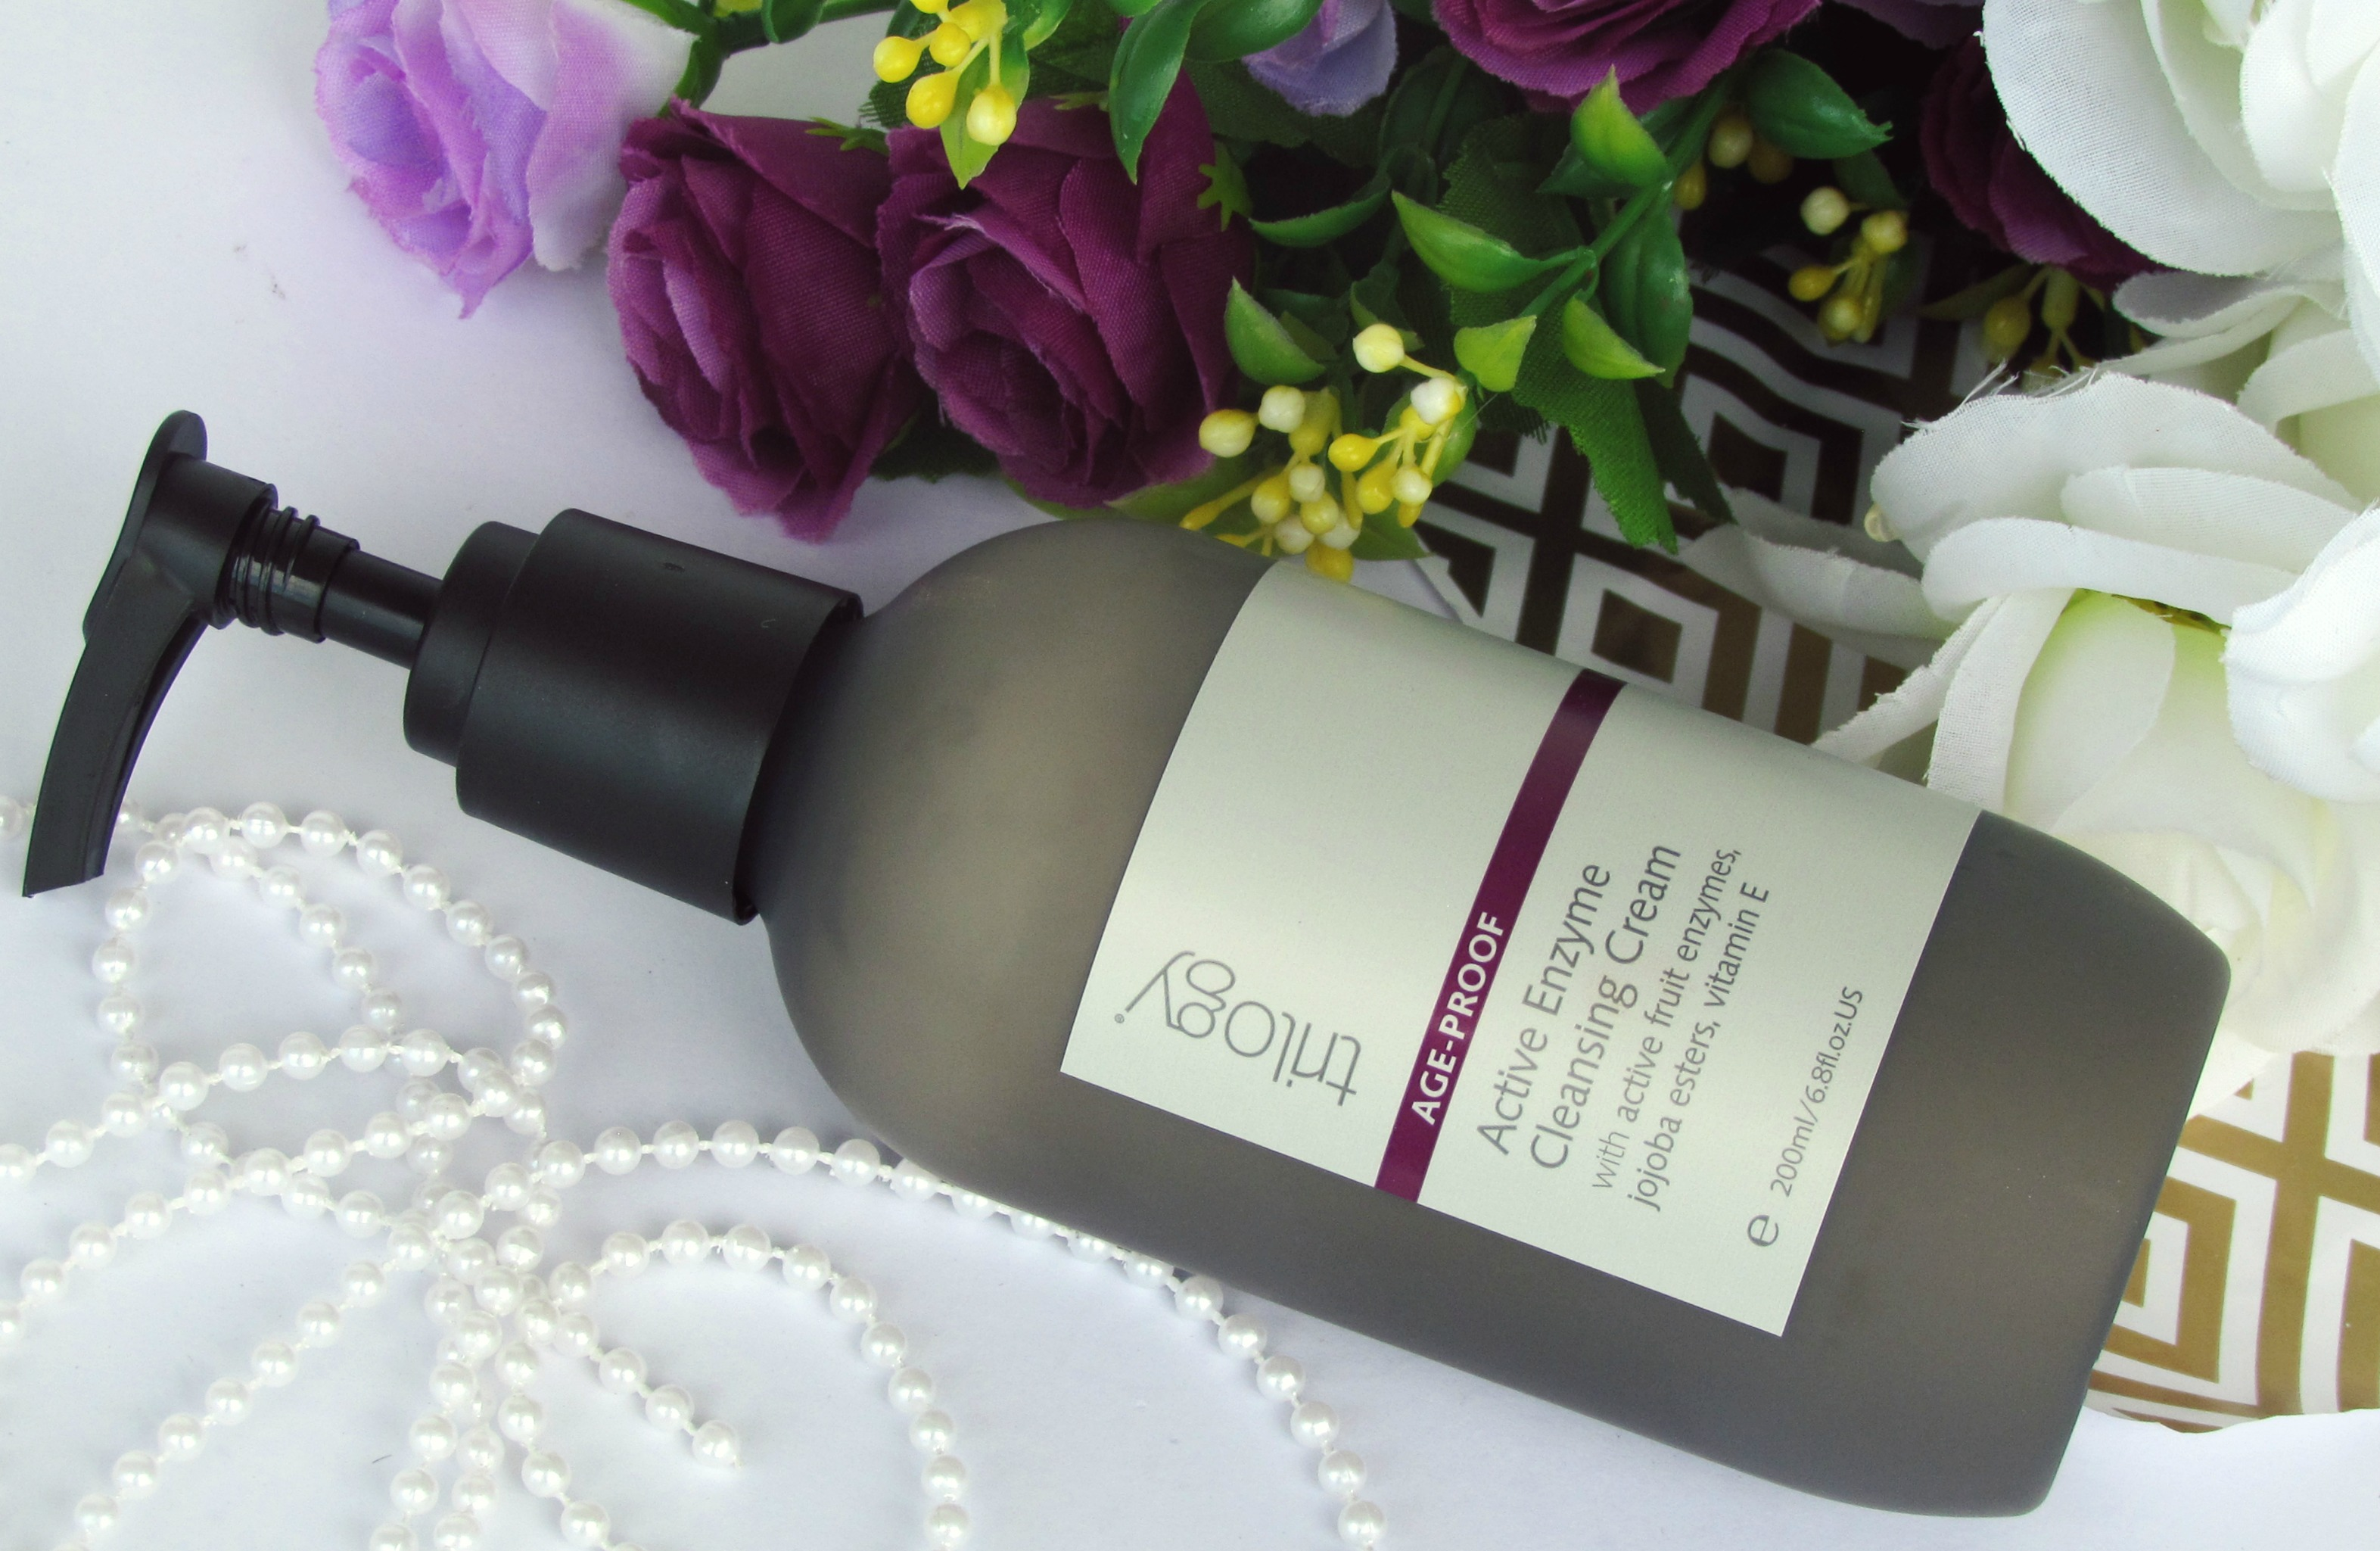 Trilogy Age-Proof Active Enzyme Cleansing Cream| Review